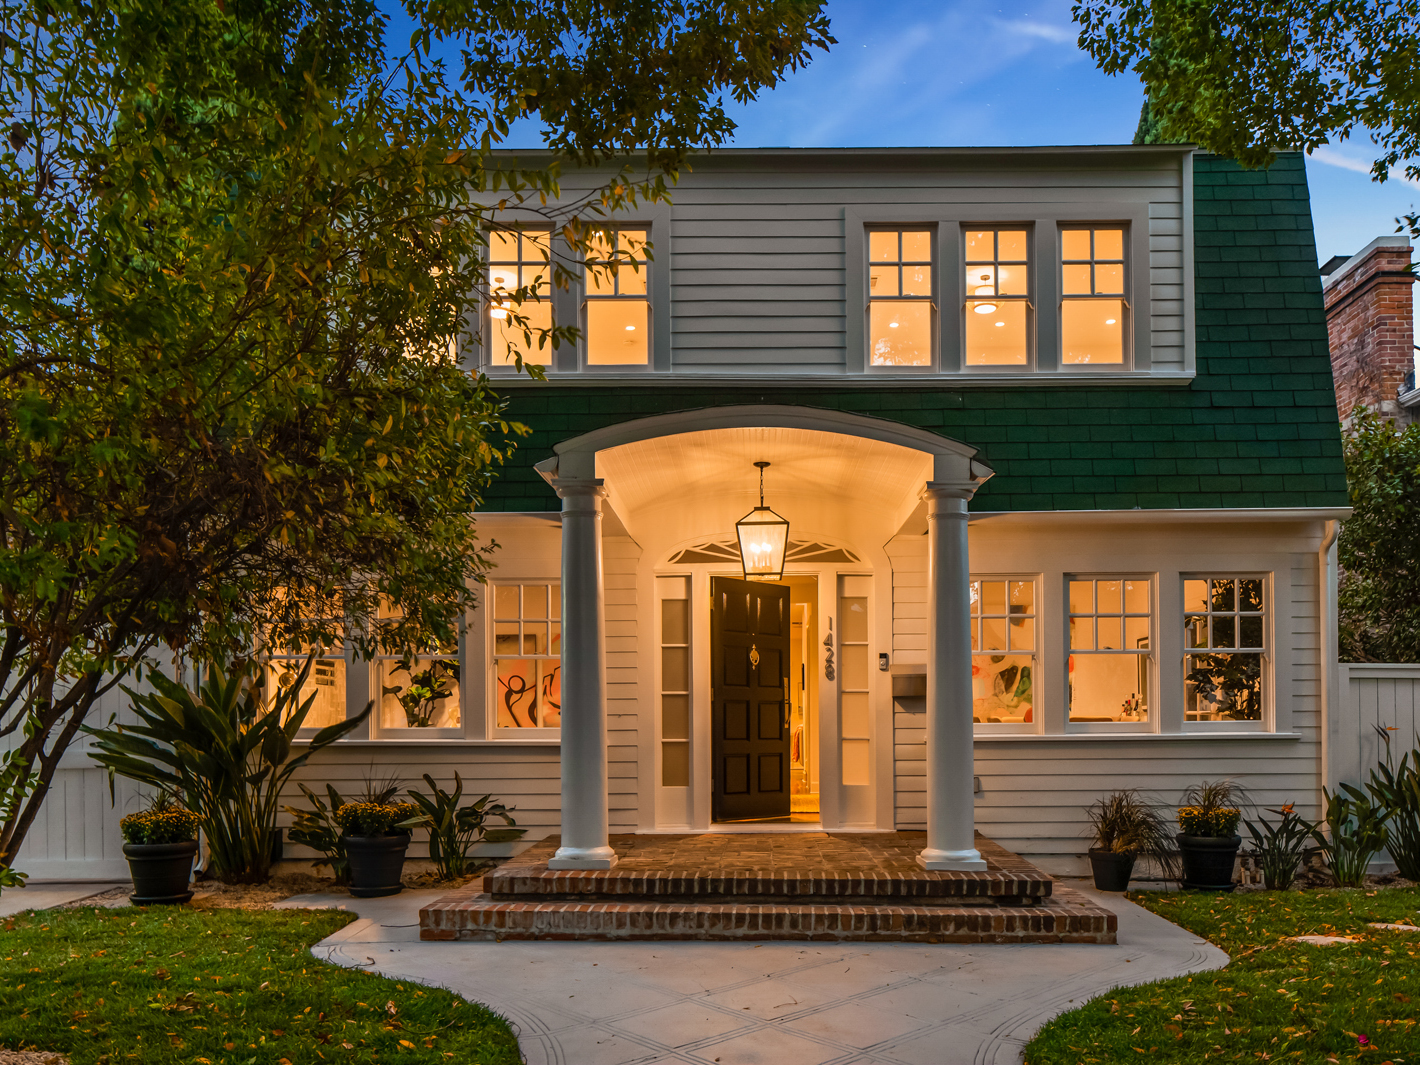 The house from the movie 'A Nightmare on Elm Street' is up for sale